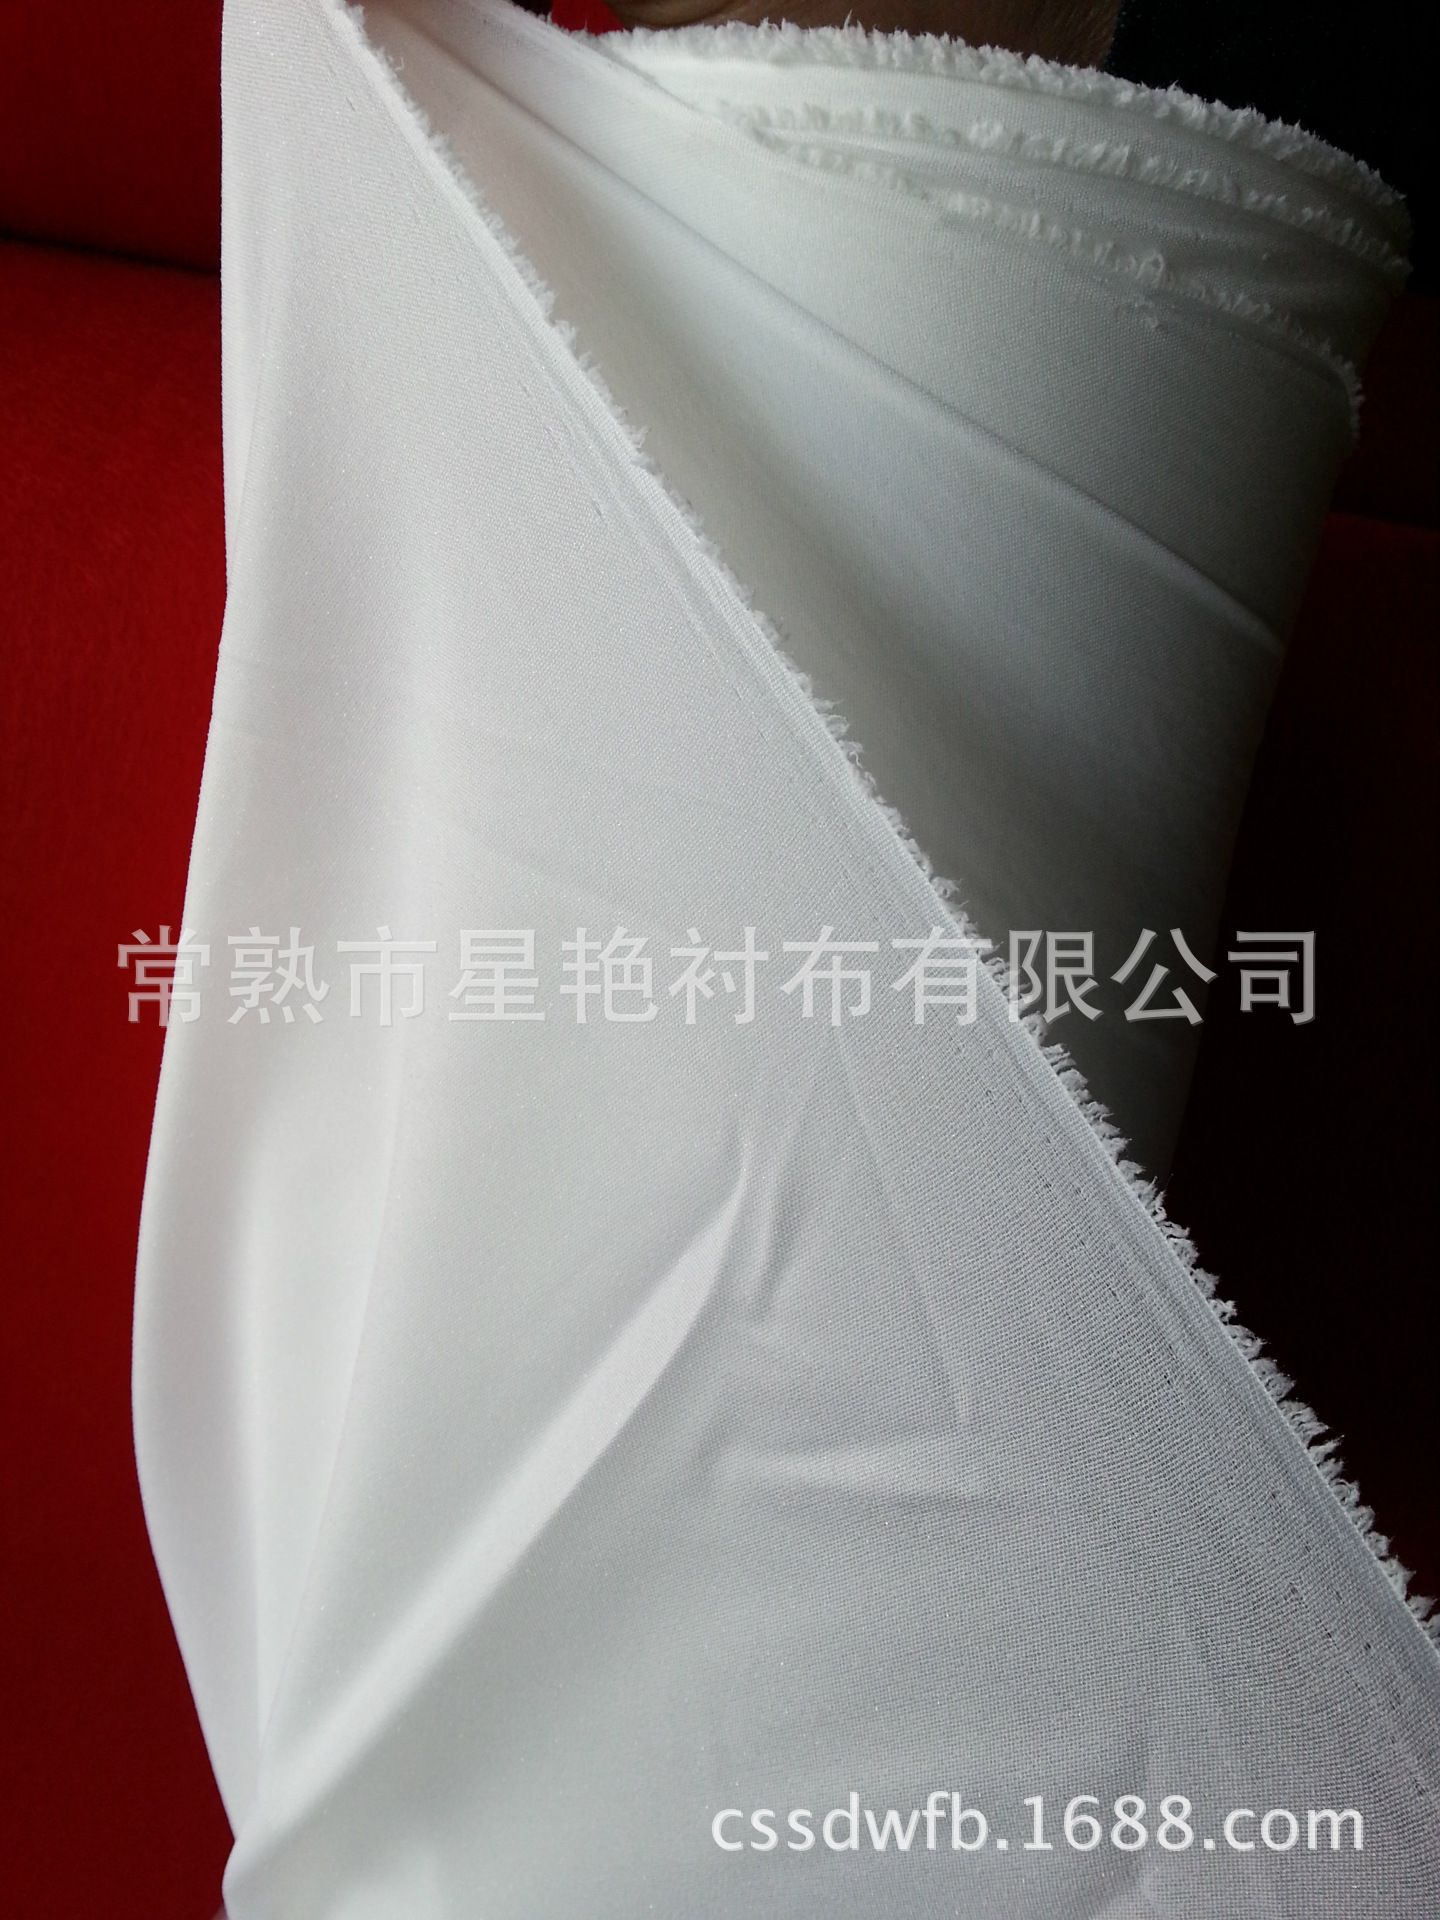 Vải lót   Manufacturers supply wholesale 50D stretch interlining Fusible interlining upscale clothin